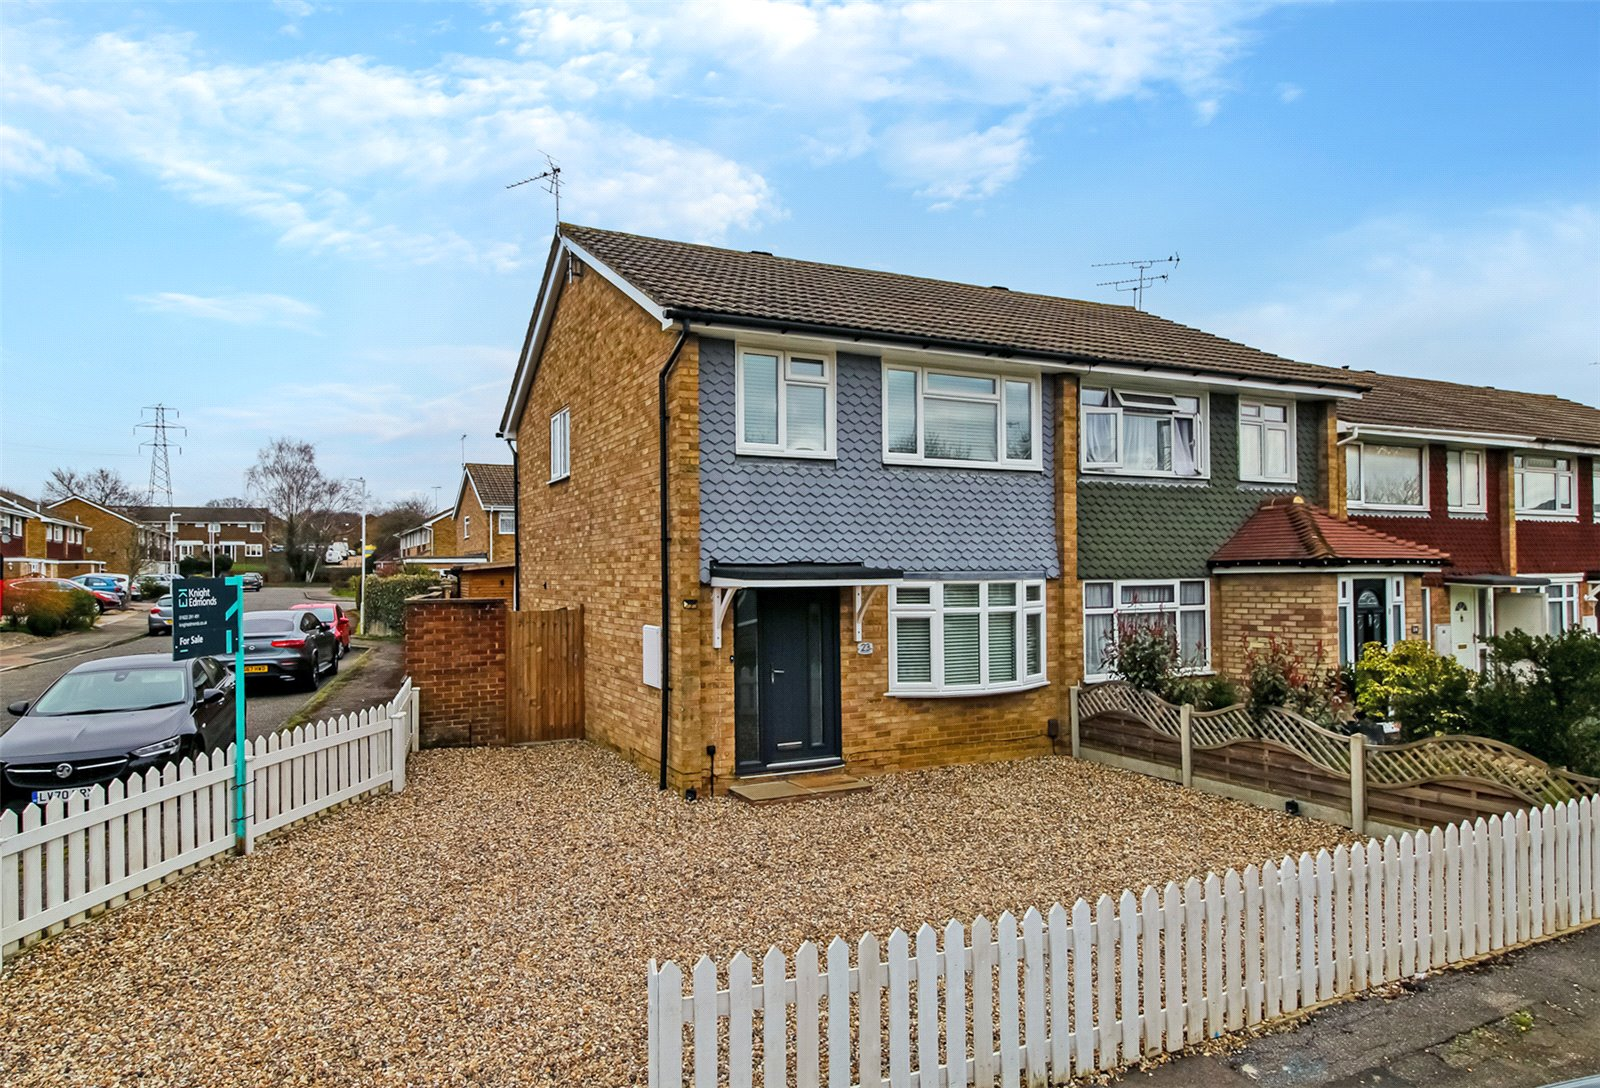 3 bed house for sale in Cudham Close, Vinters Park  - Property Image 1